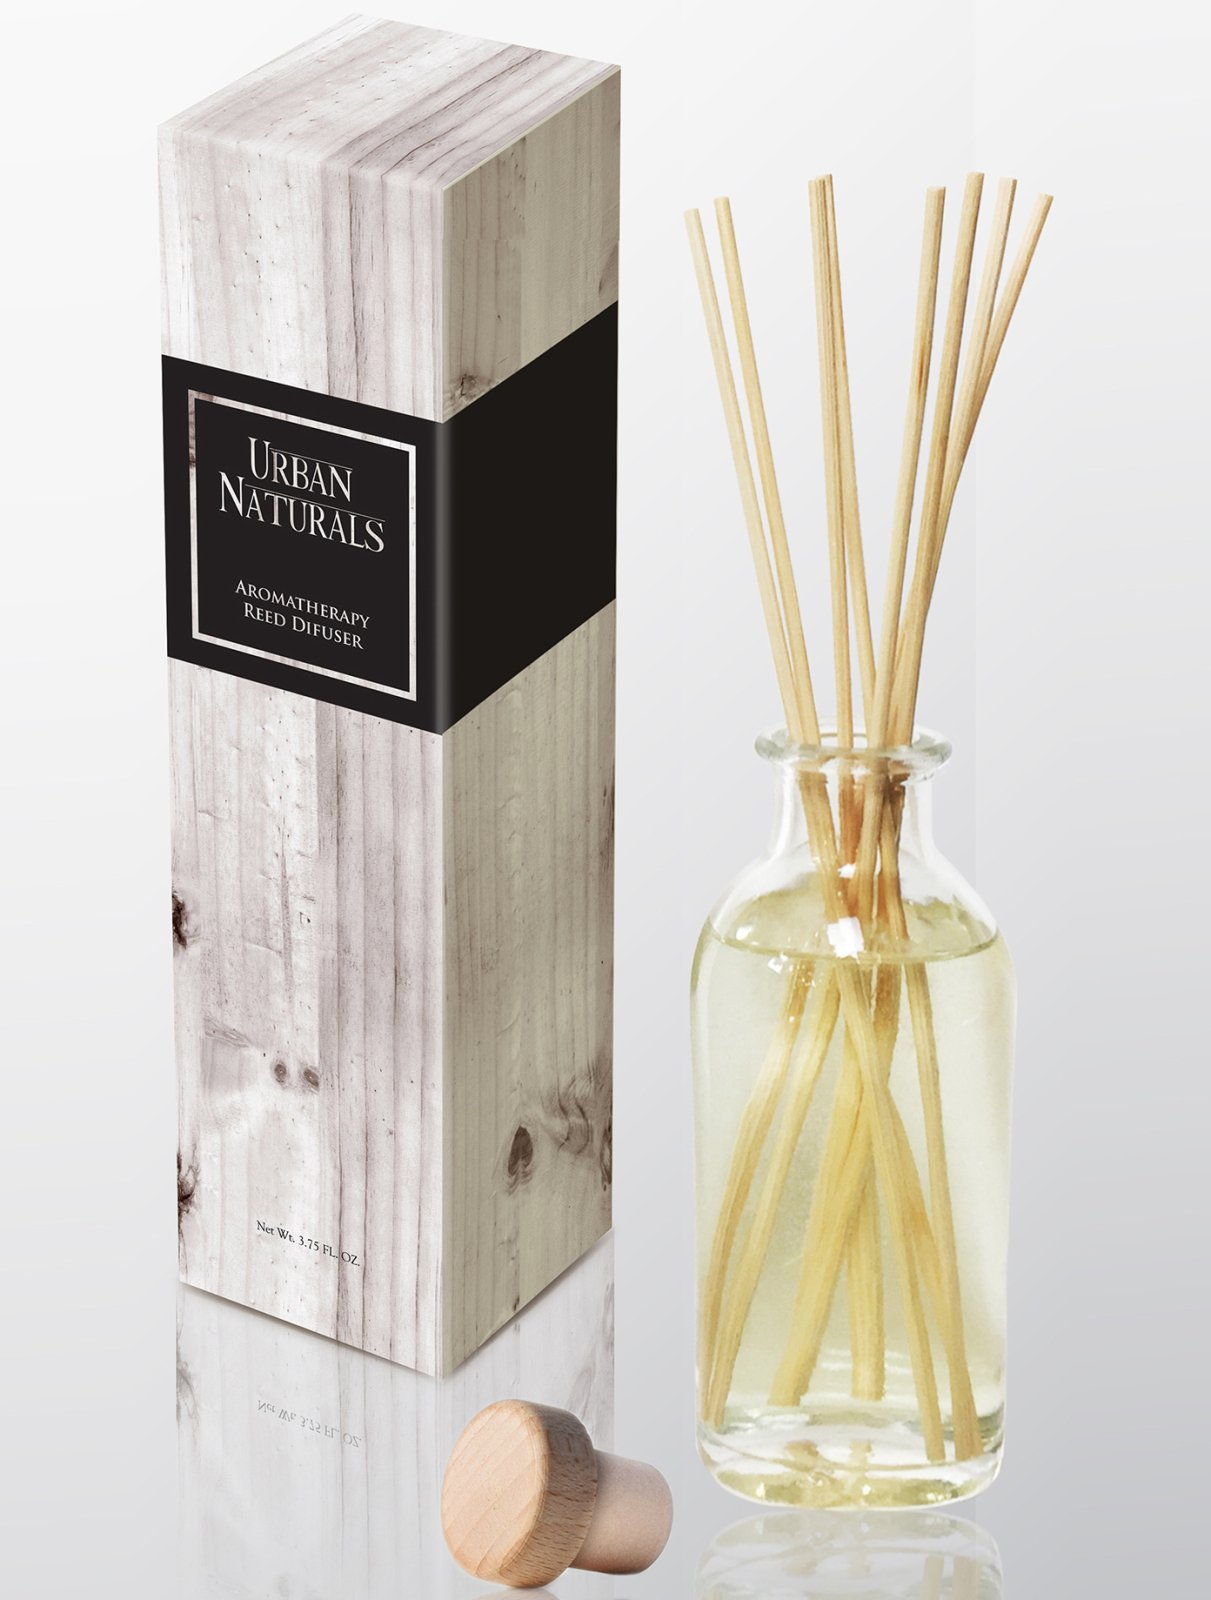 Urban Naturals Stress Relief Eucalyptus Spearmint Reed Diffuser Oil Refill | Fill Your own DIY Diffuser Bottle! Includes Replacement Reed Sticks by Urban Naturals (Image #2)